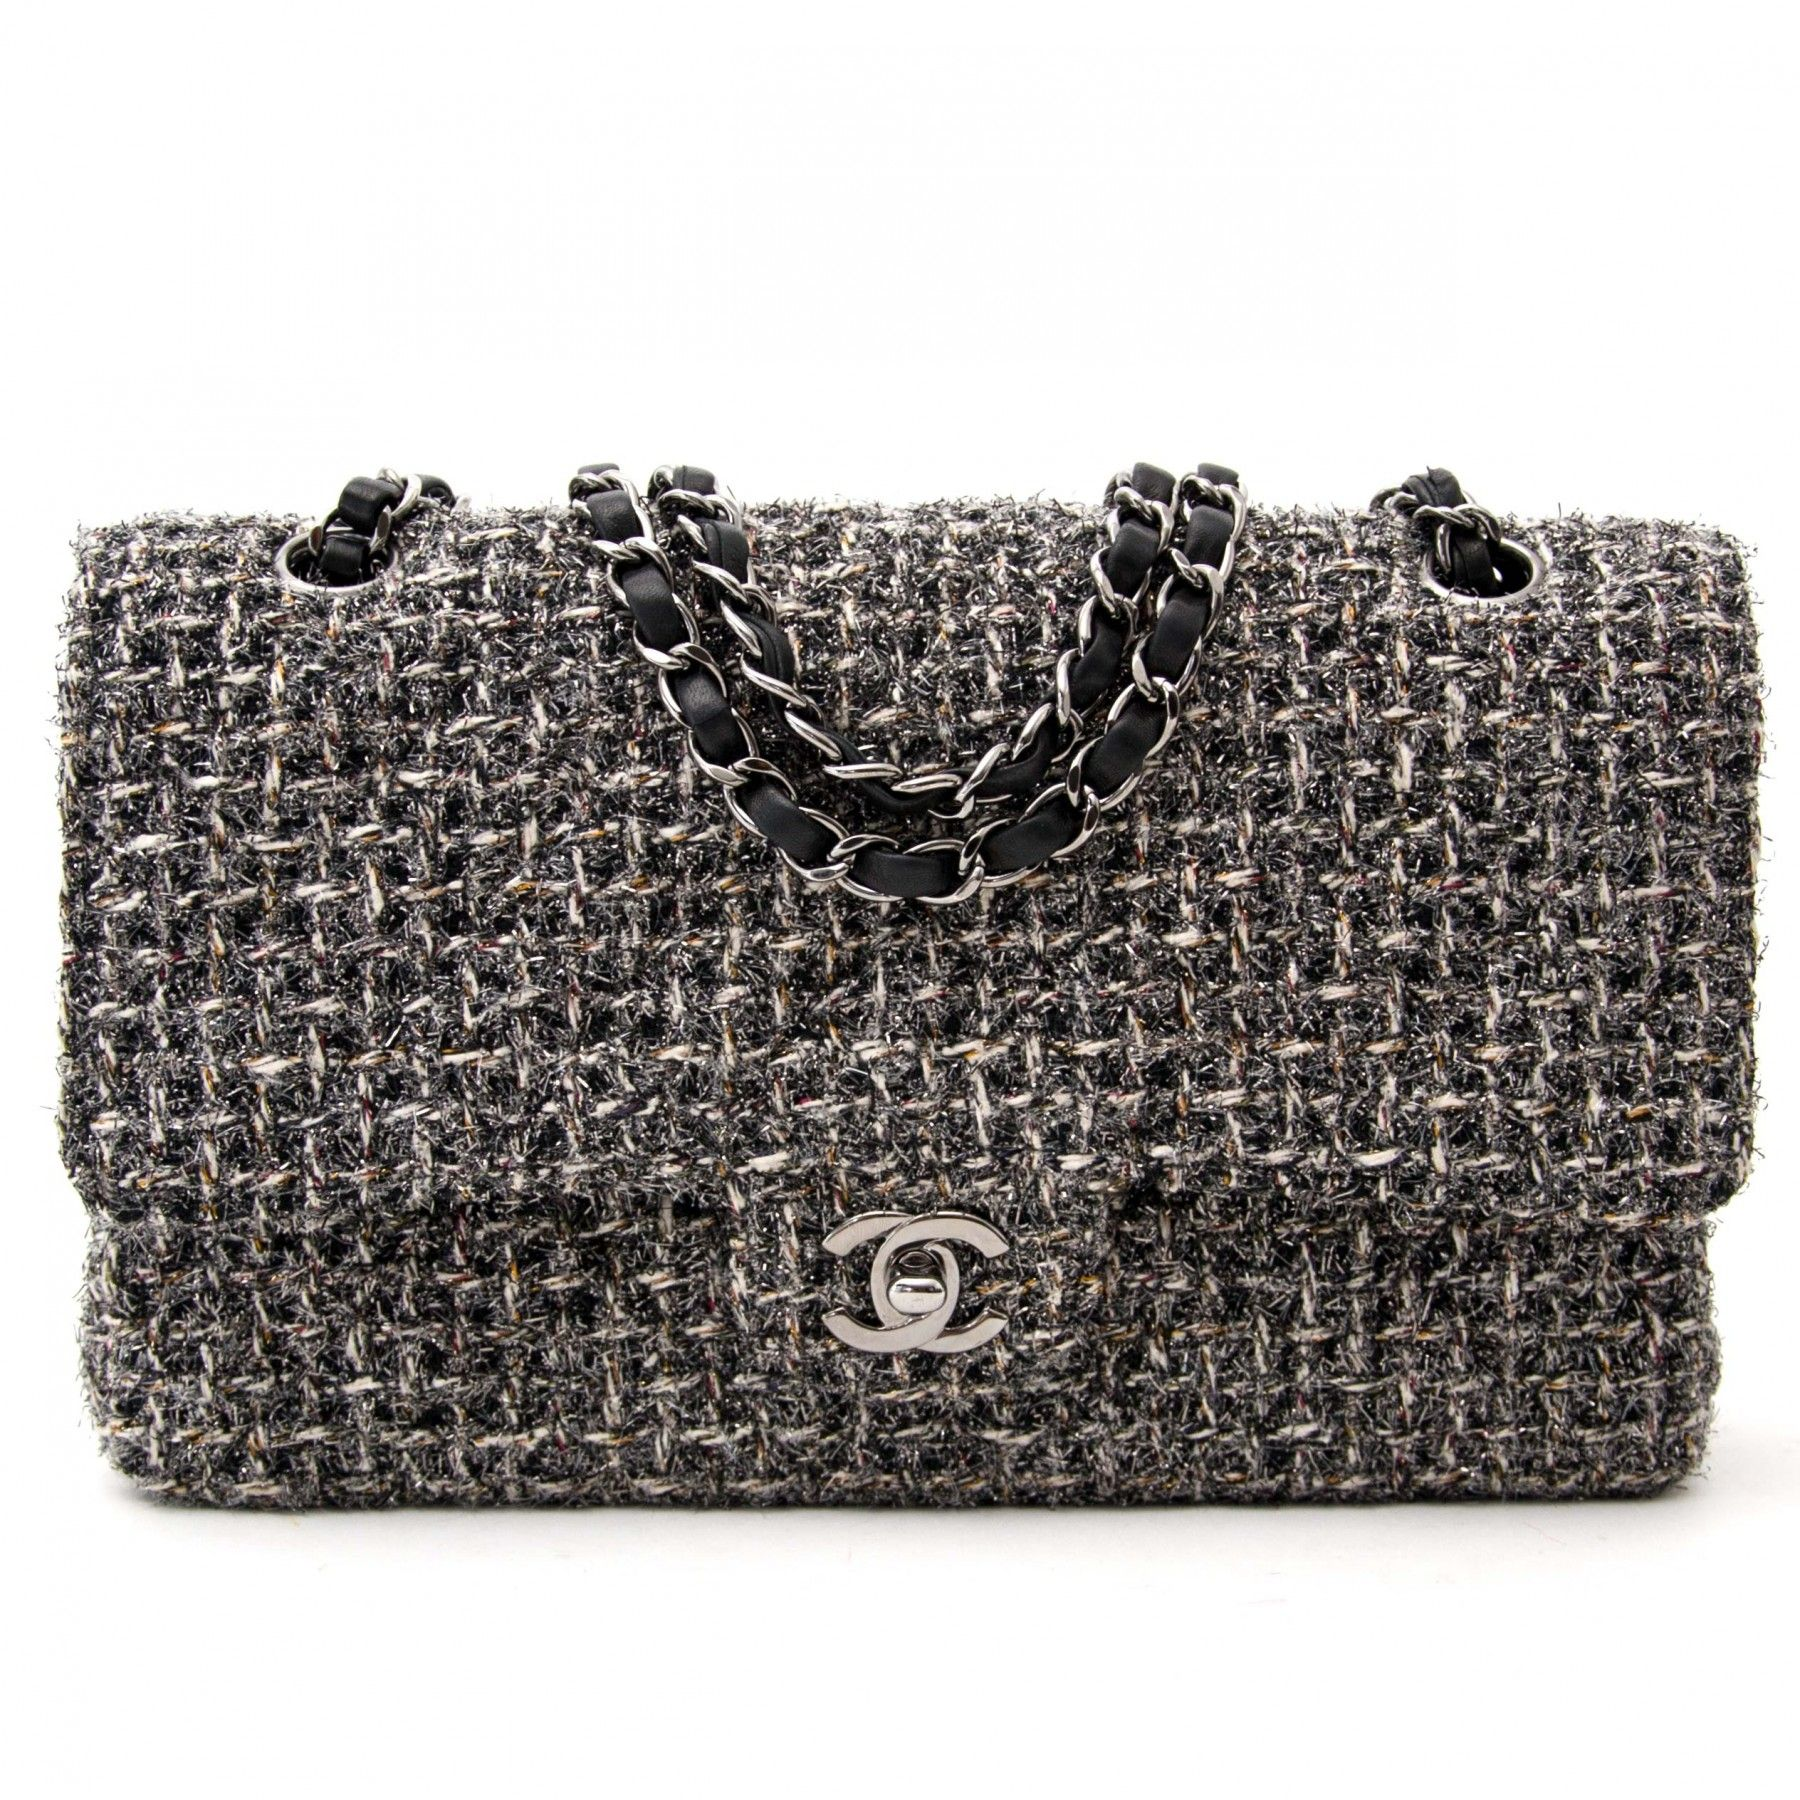 bd2bacbe8f8c Labellov Chanel Tinsel Tweed Classic Flap Bag ○ Buy and Sell Authentic  Luxury